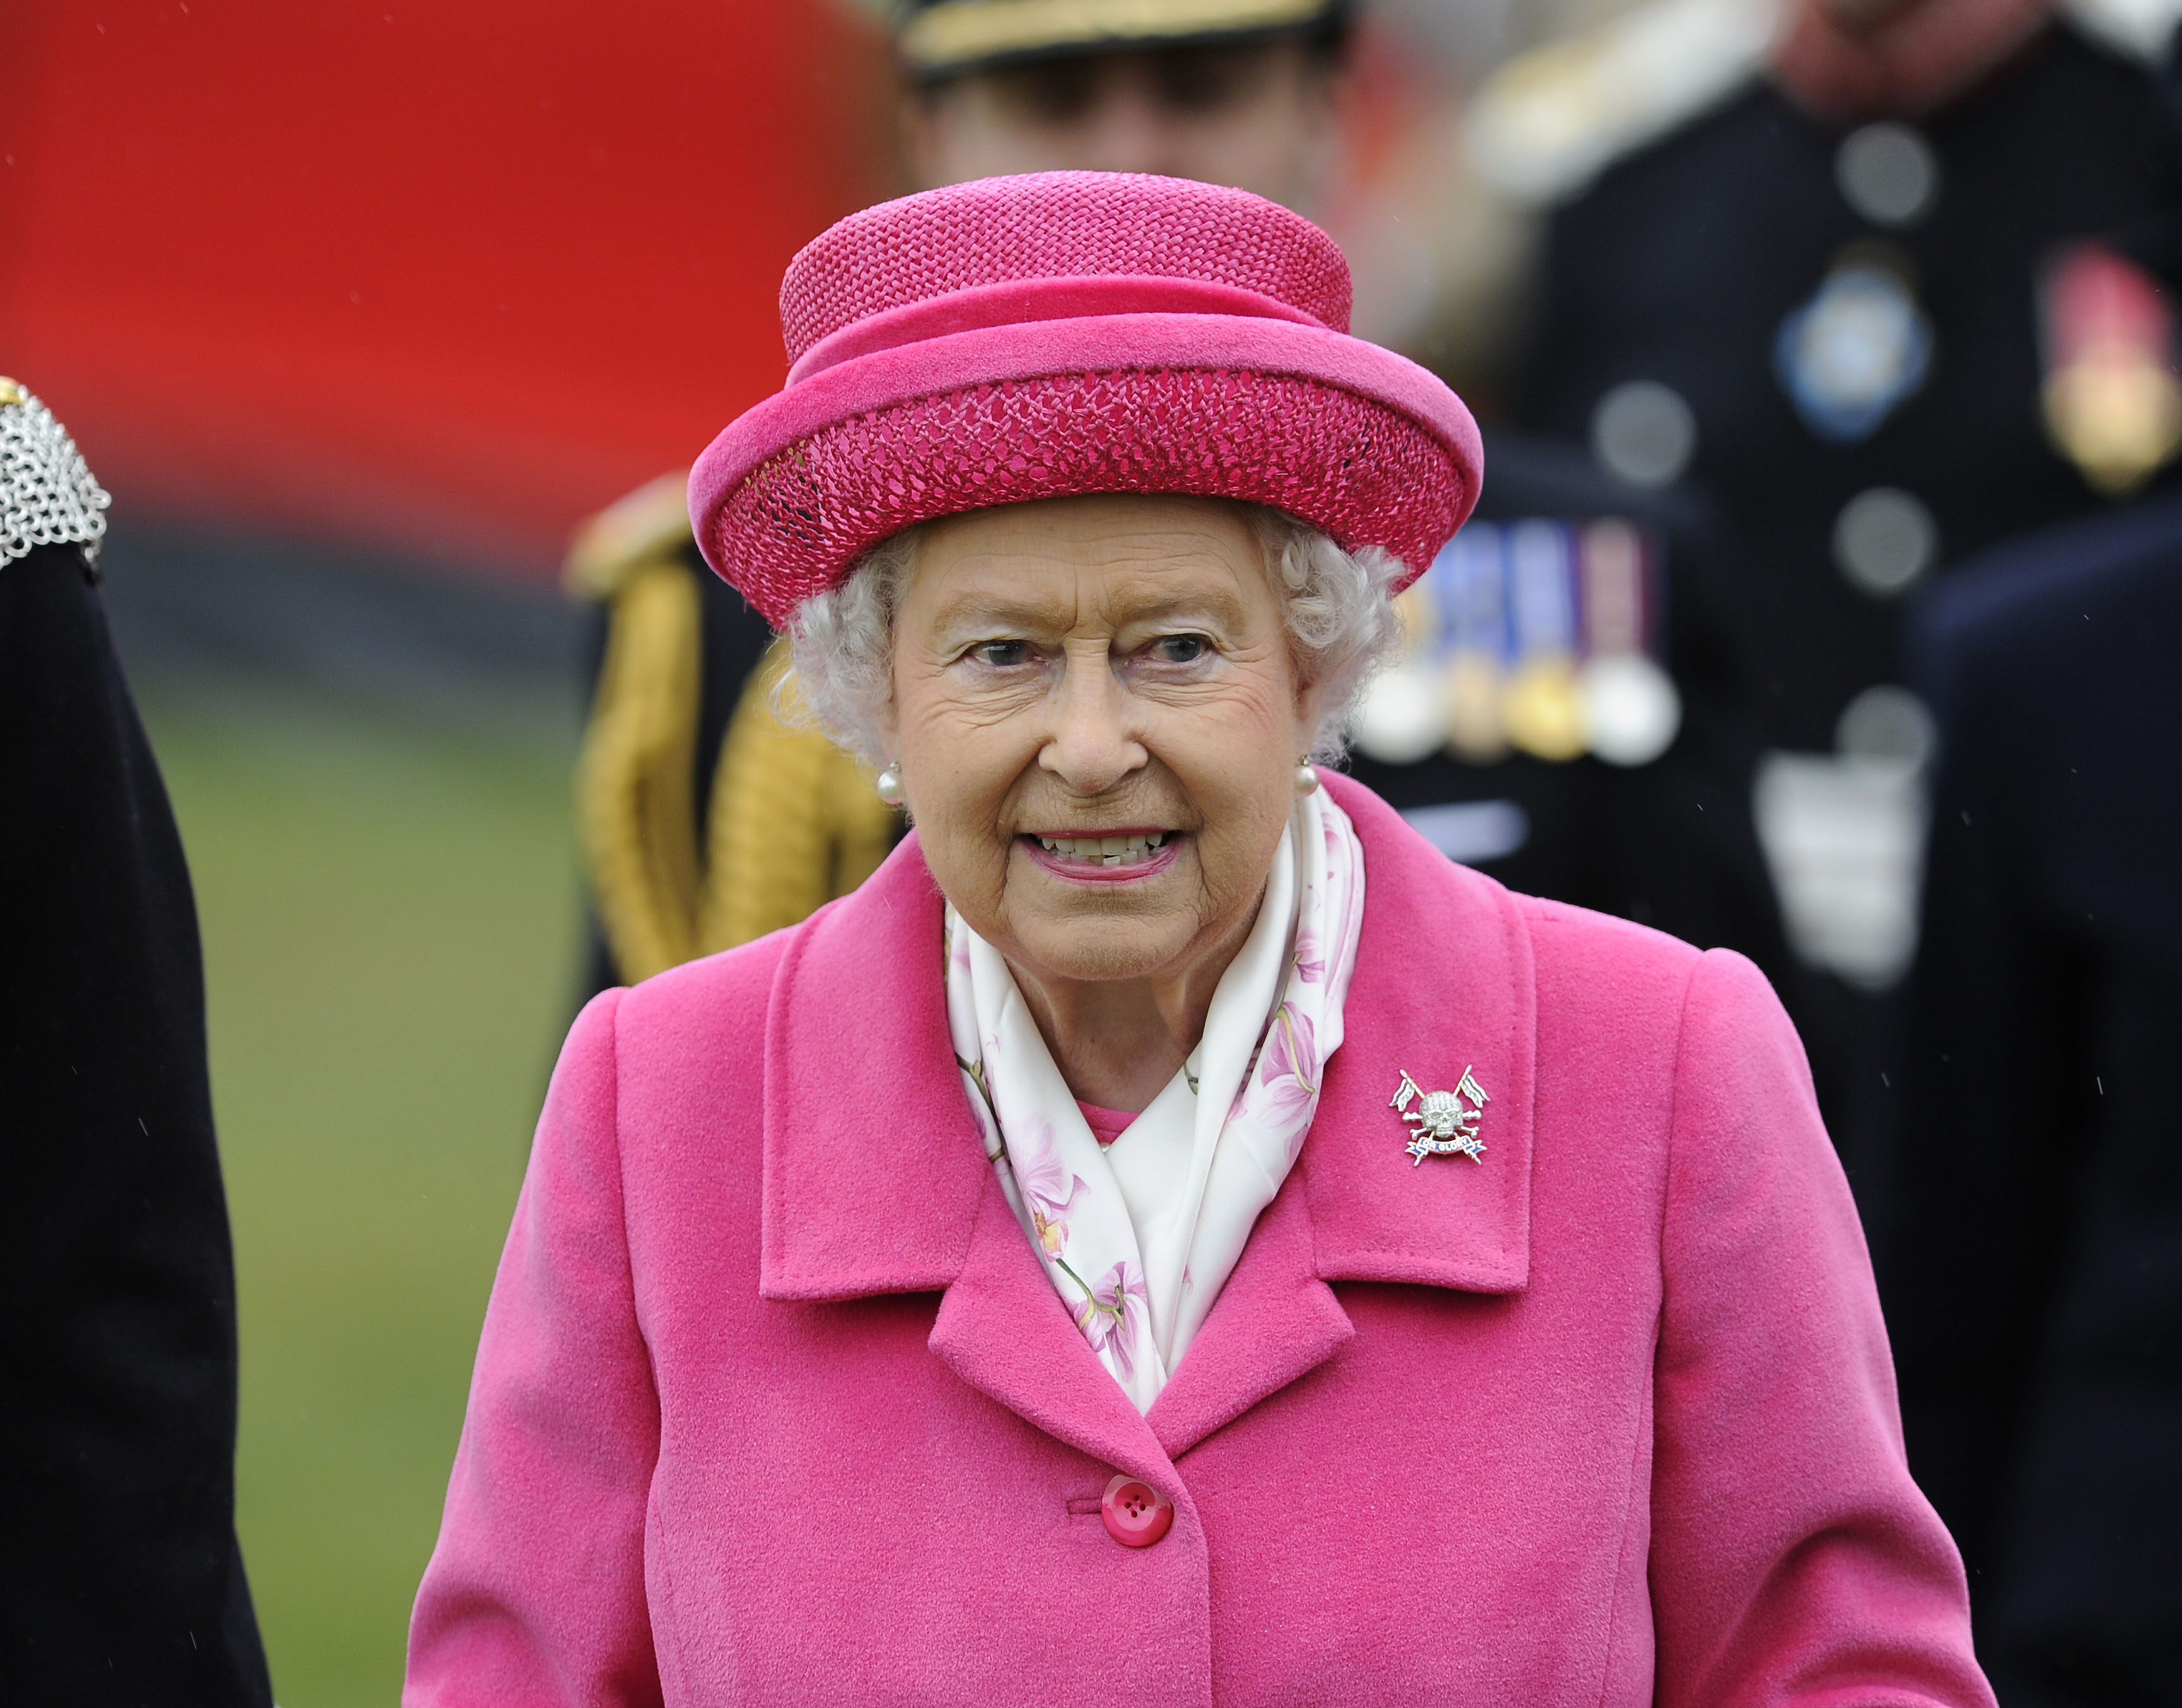 Queen Elizabeth II during a visit to Richmond Castle to attend the amalgamation parade of The Queen's Royal Lancers and 9th/12th Royal Lancers on May 2, 2015.